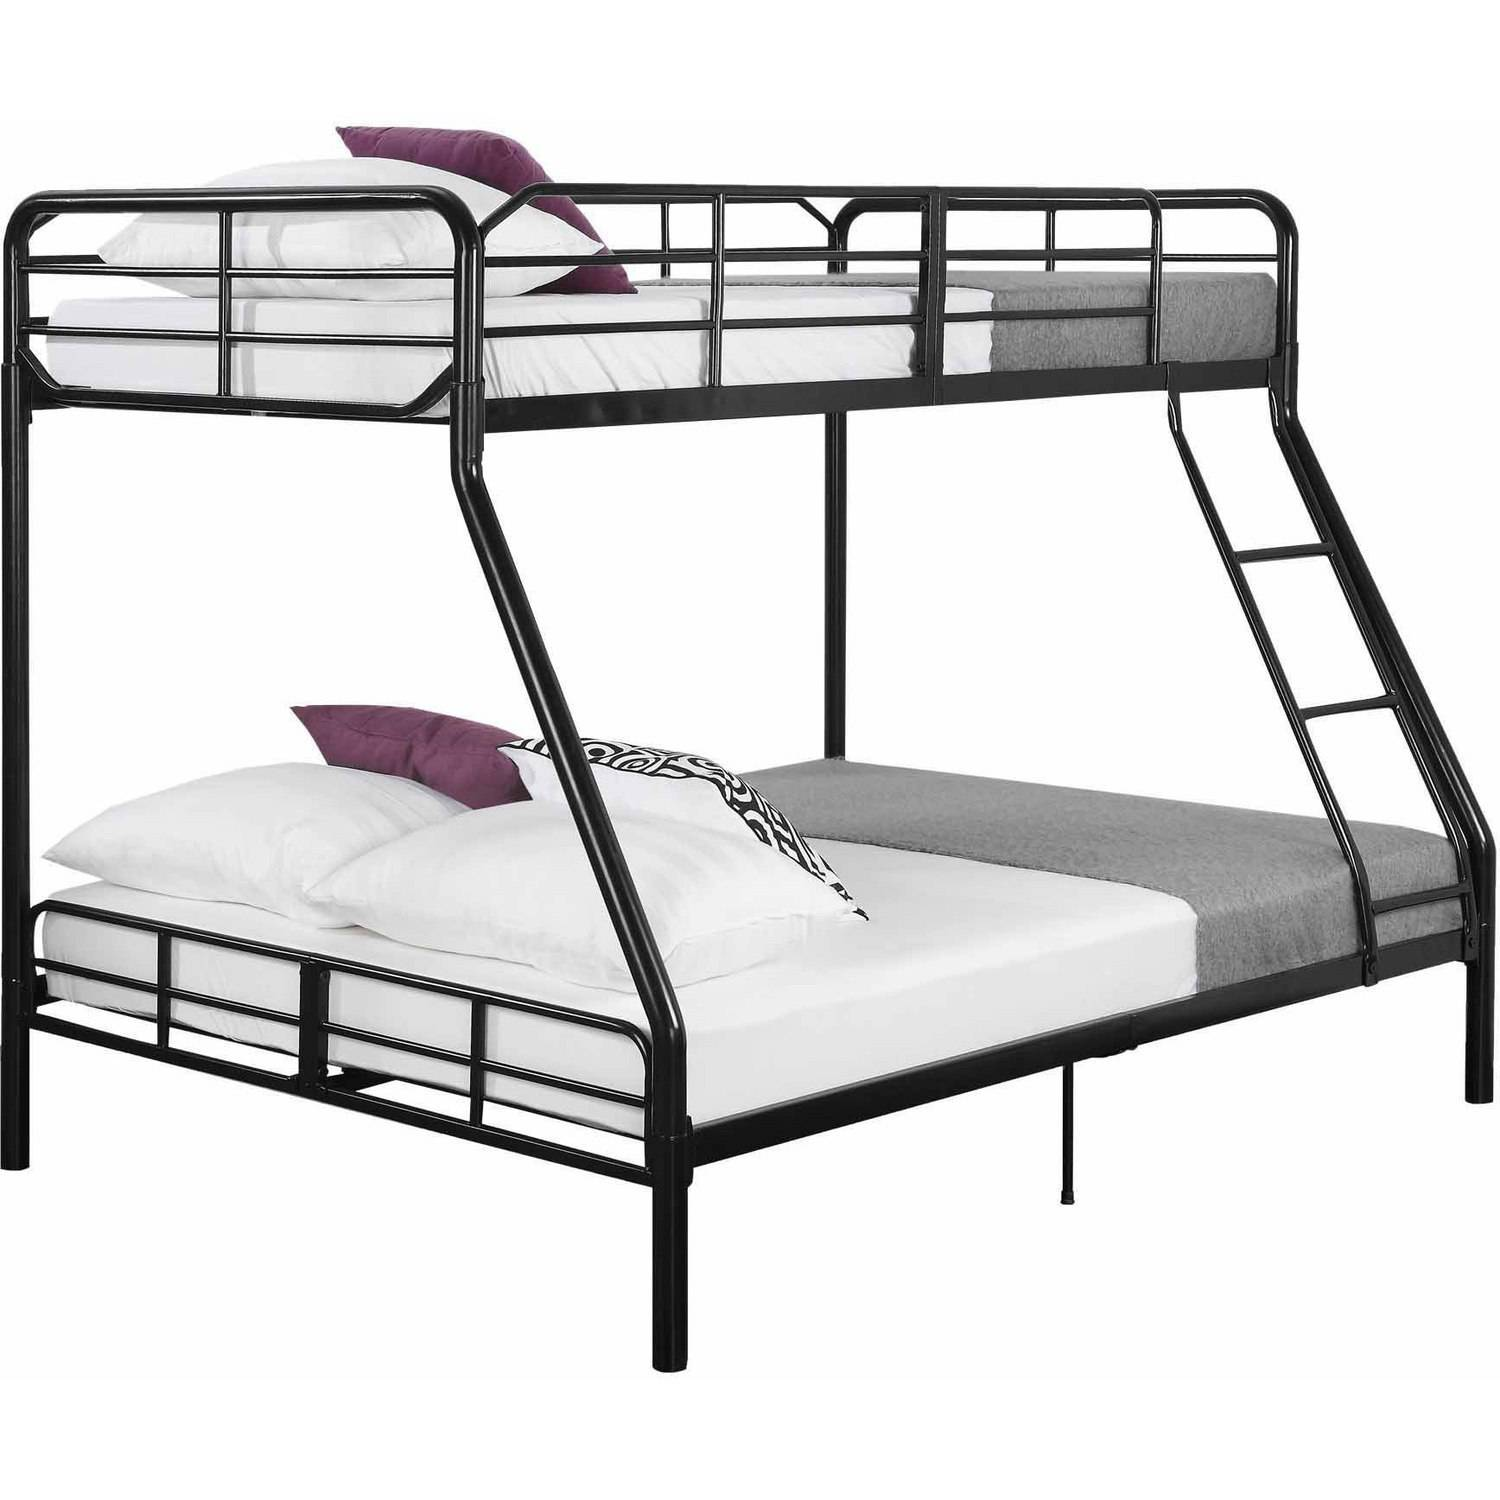 Mainstays Twin Over Full Metal Sturdy Bunk Bed Black Walmart Com